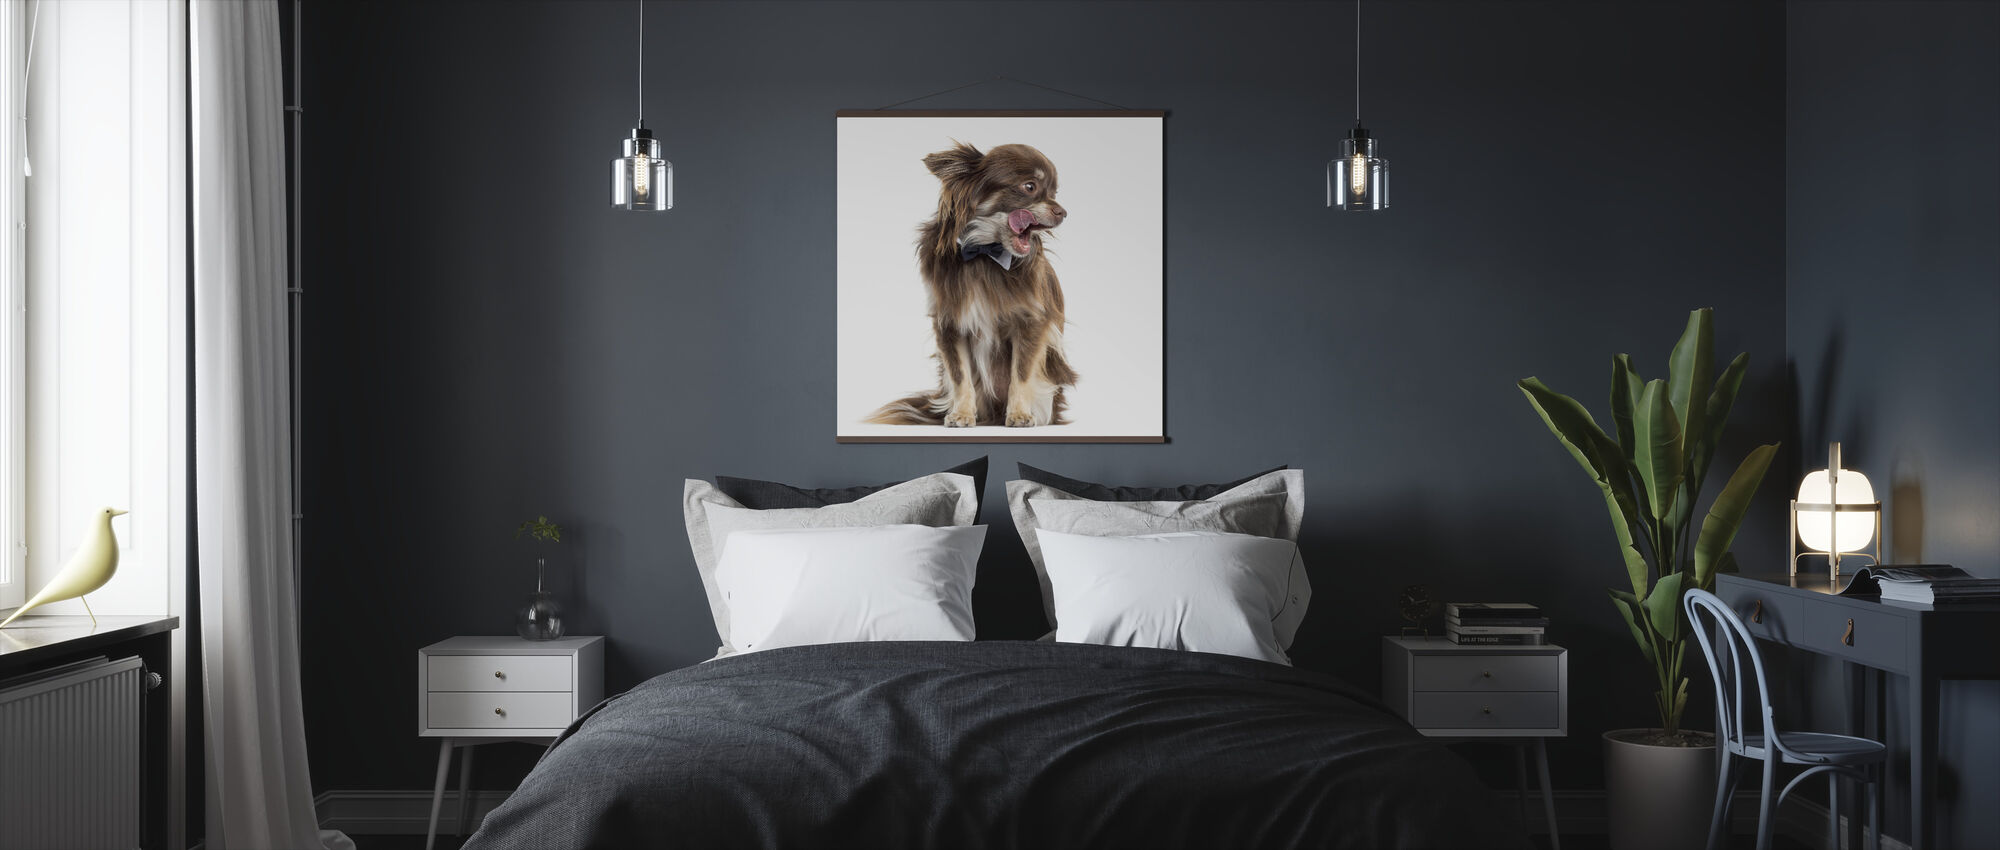 Chihuahua - Poster - Bedroom